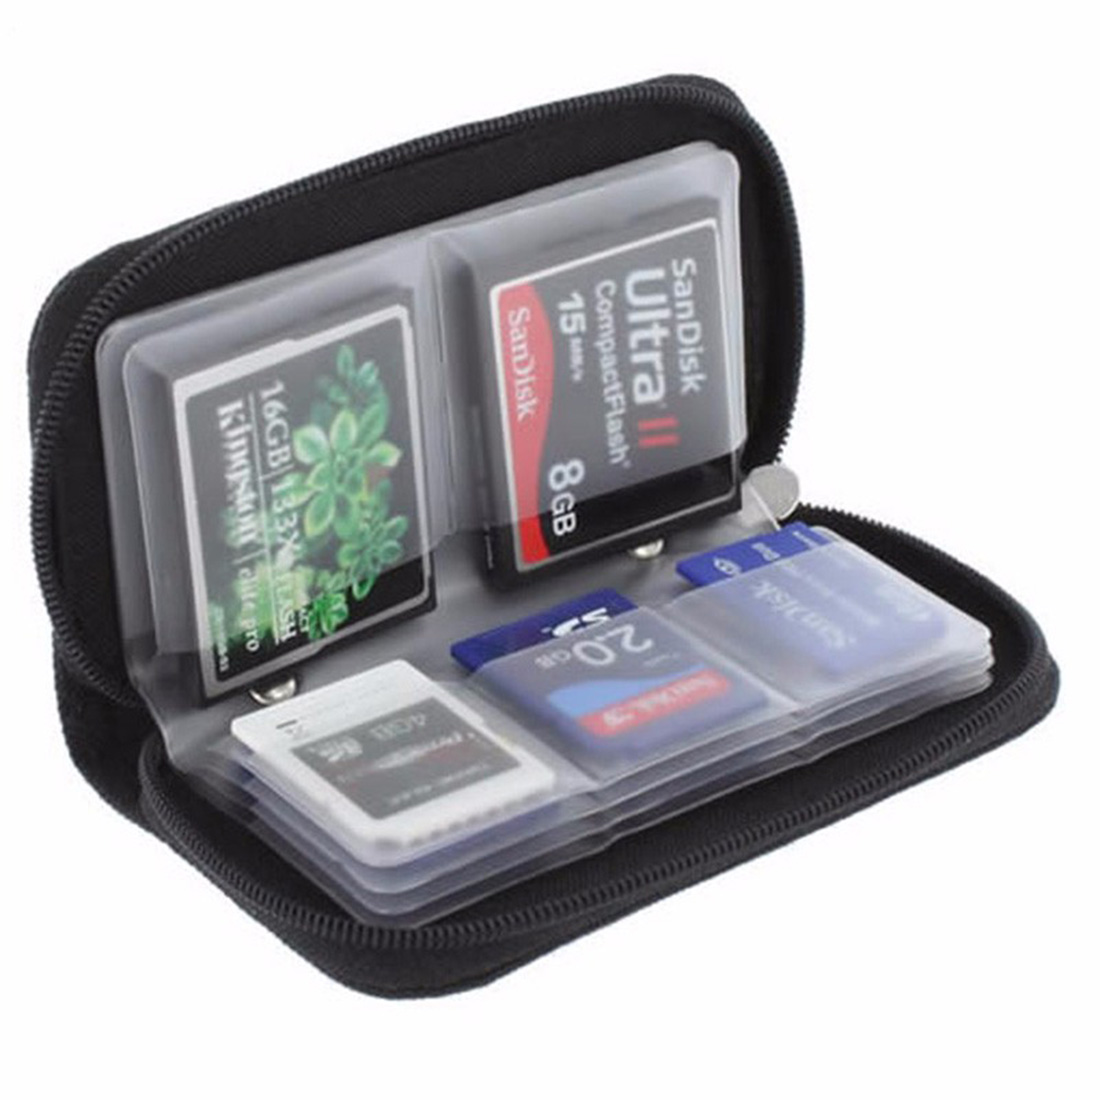 NOYOKERE 1pcs High Quality Memory Card Storage Carrying Case Holder Wallet For CF/SD/SDHC/MS/DS Container